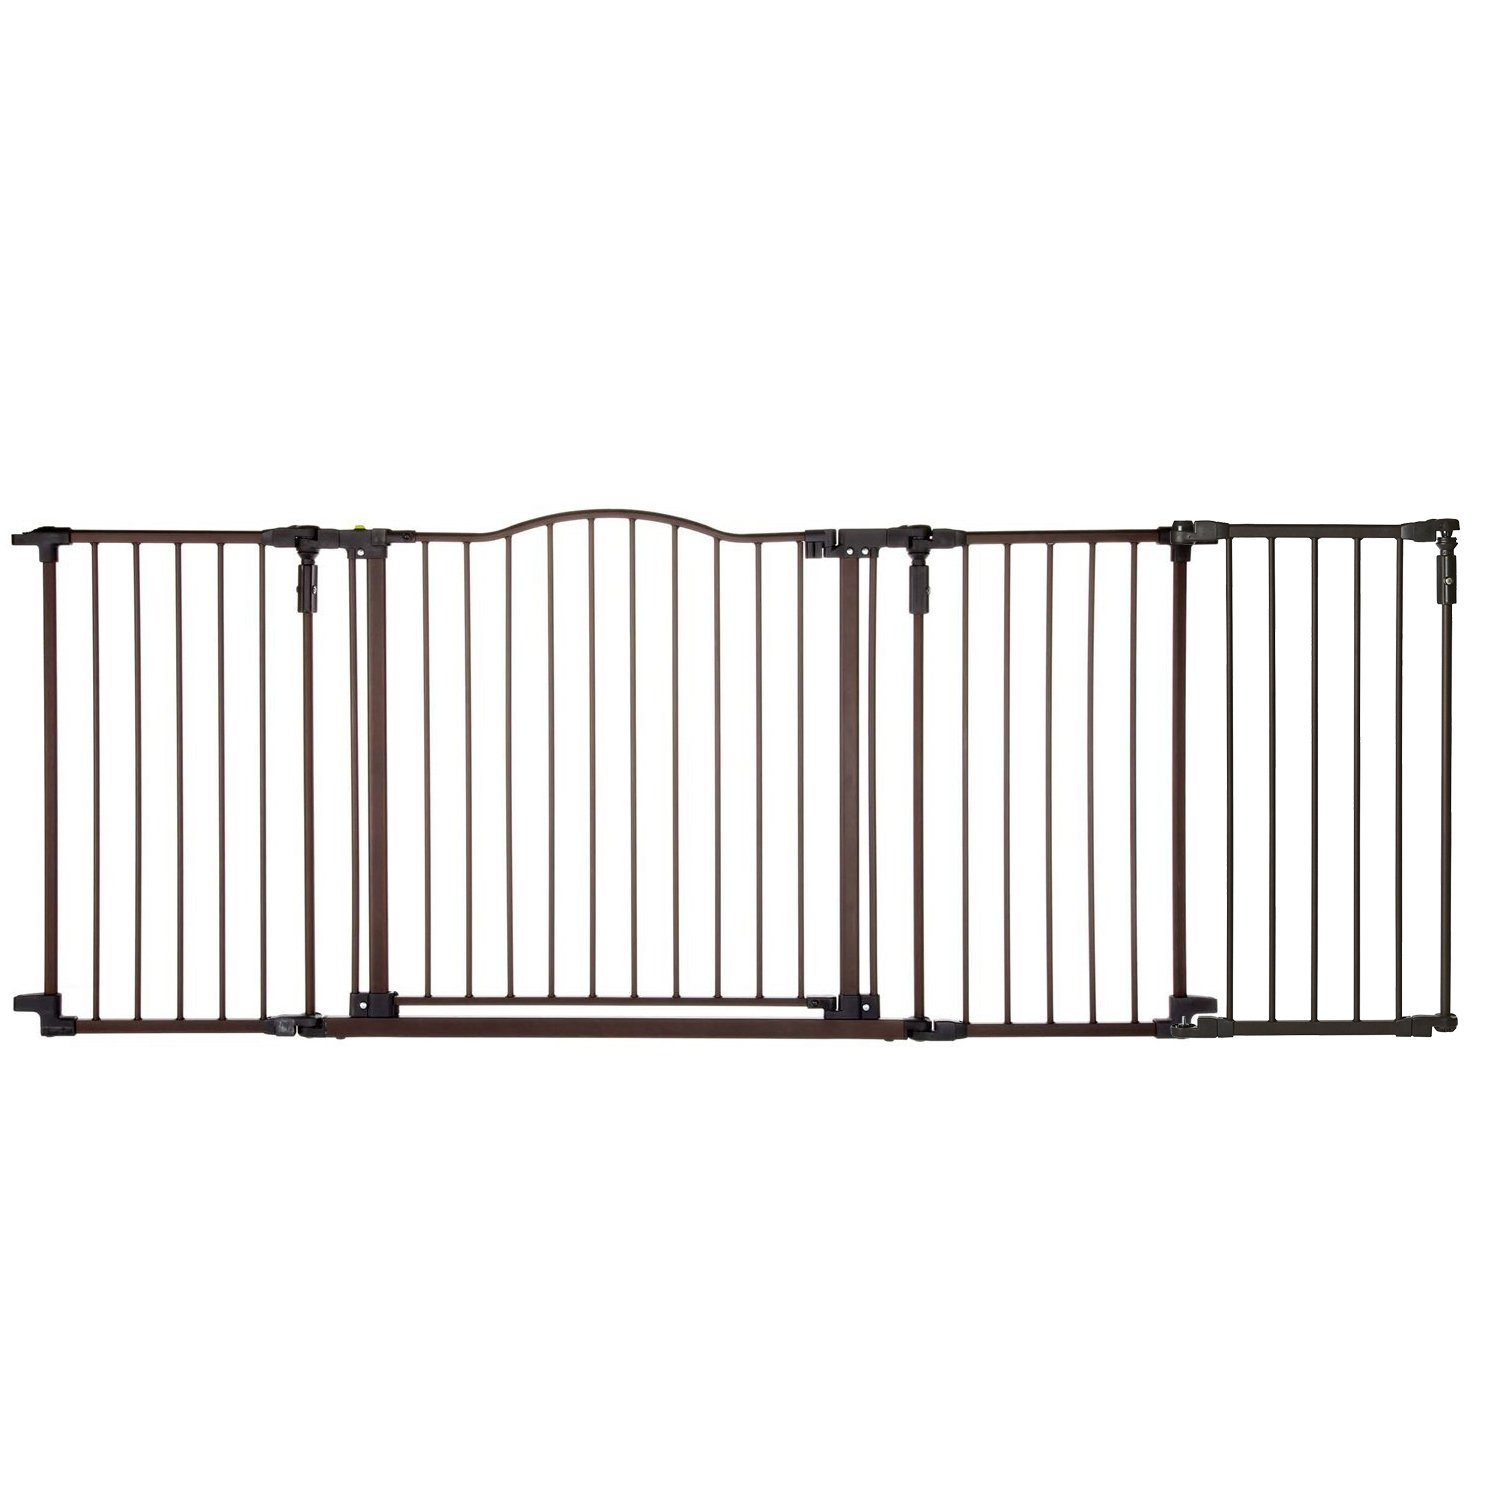 North States Deluxe Decor 38-71'' Wide Baby and Pet Metal Gate + 15'' Extension